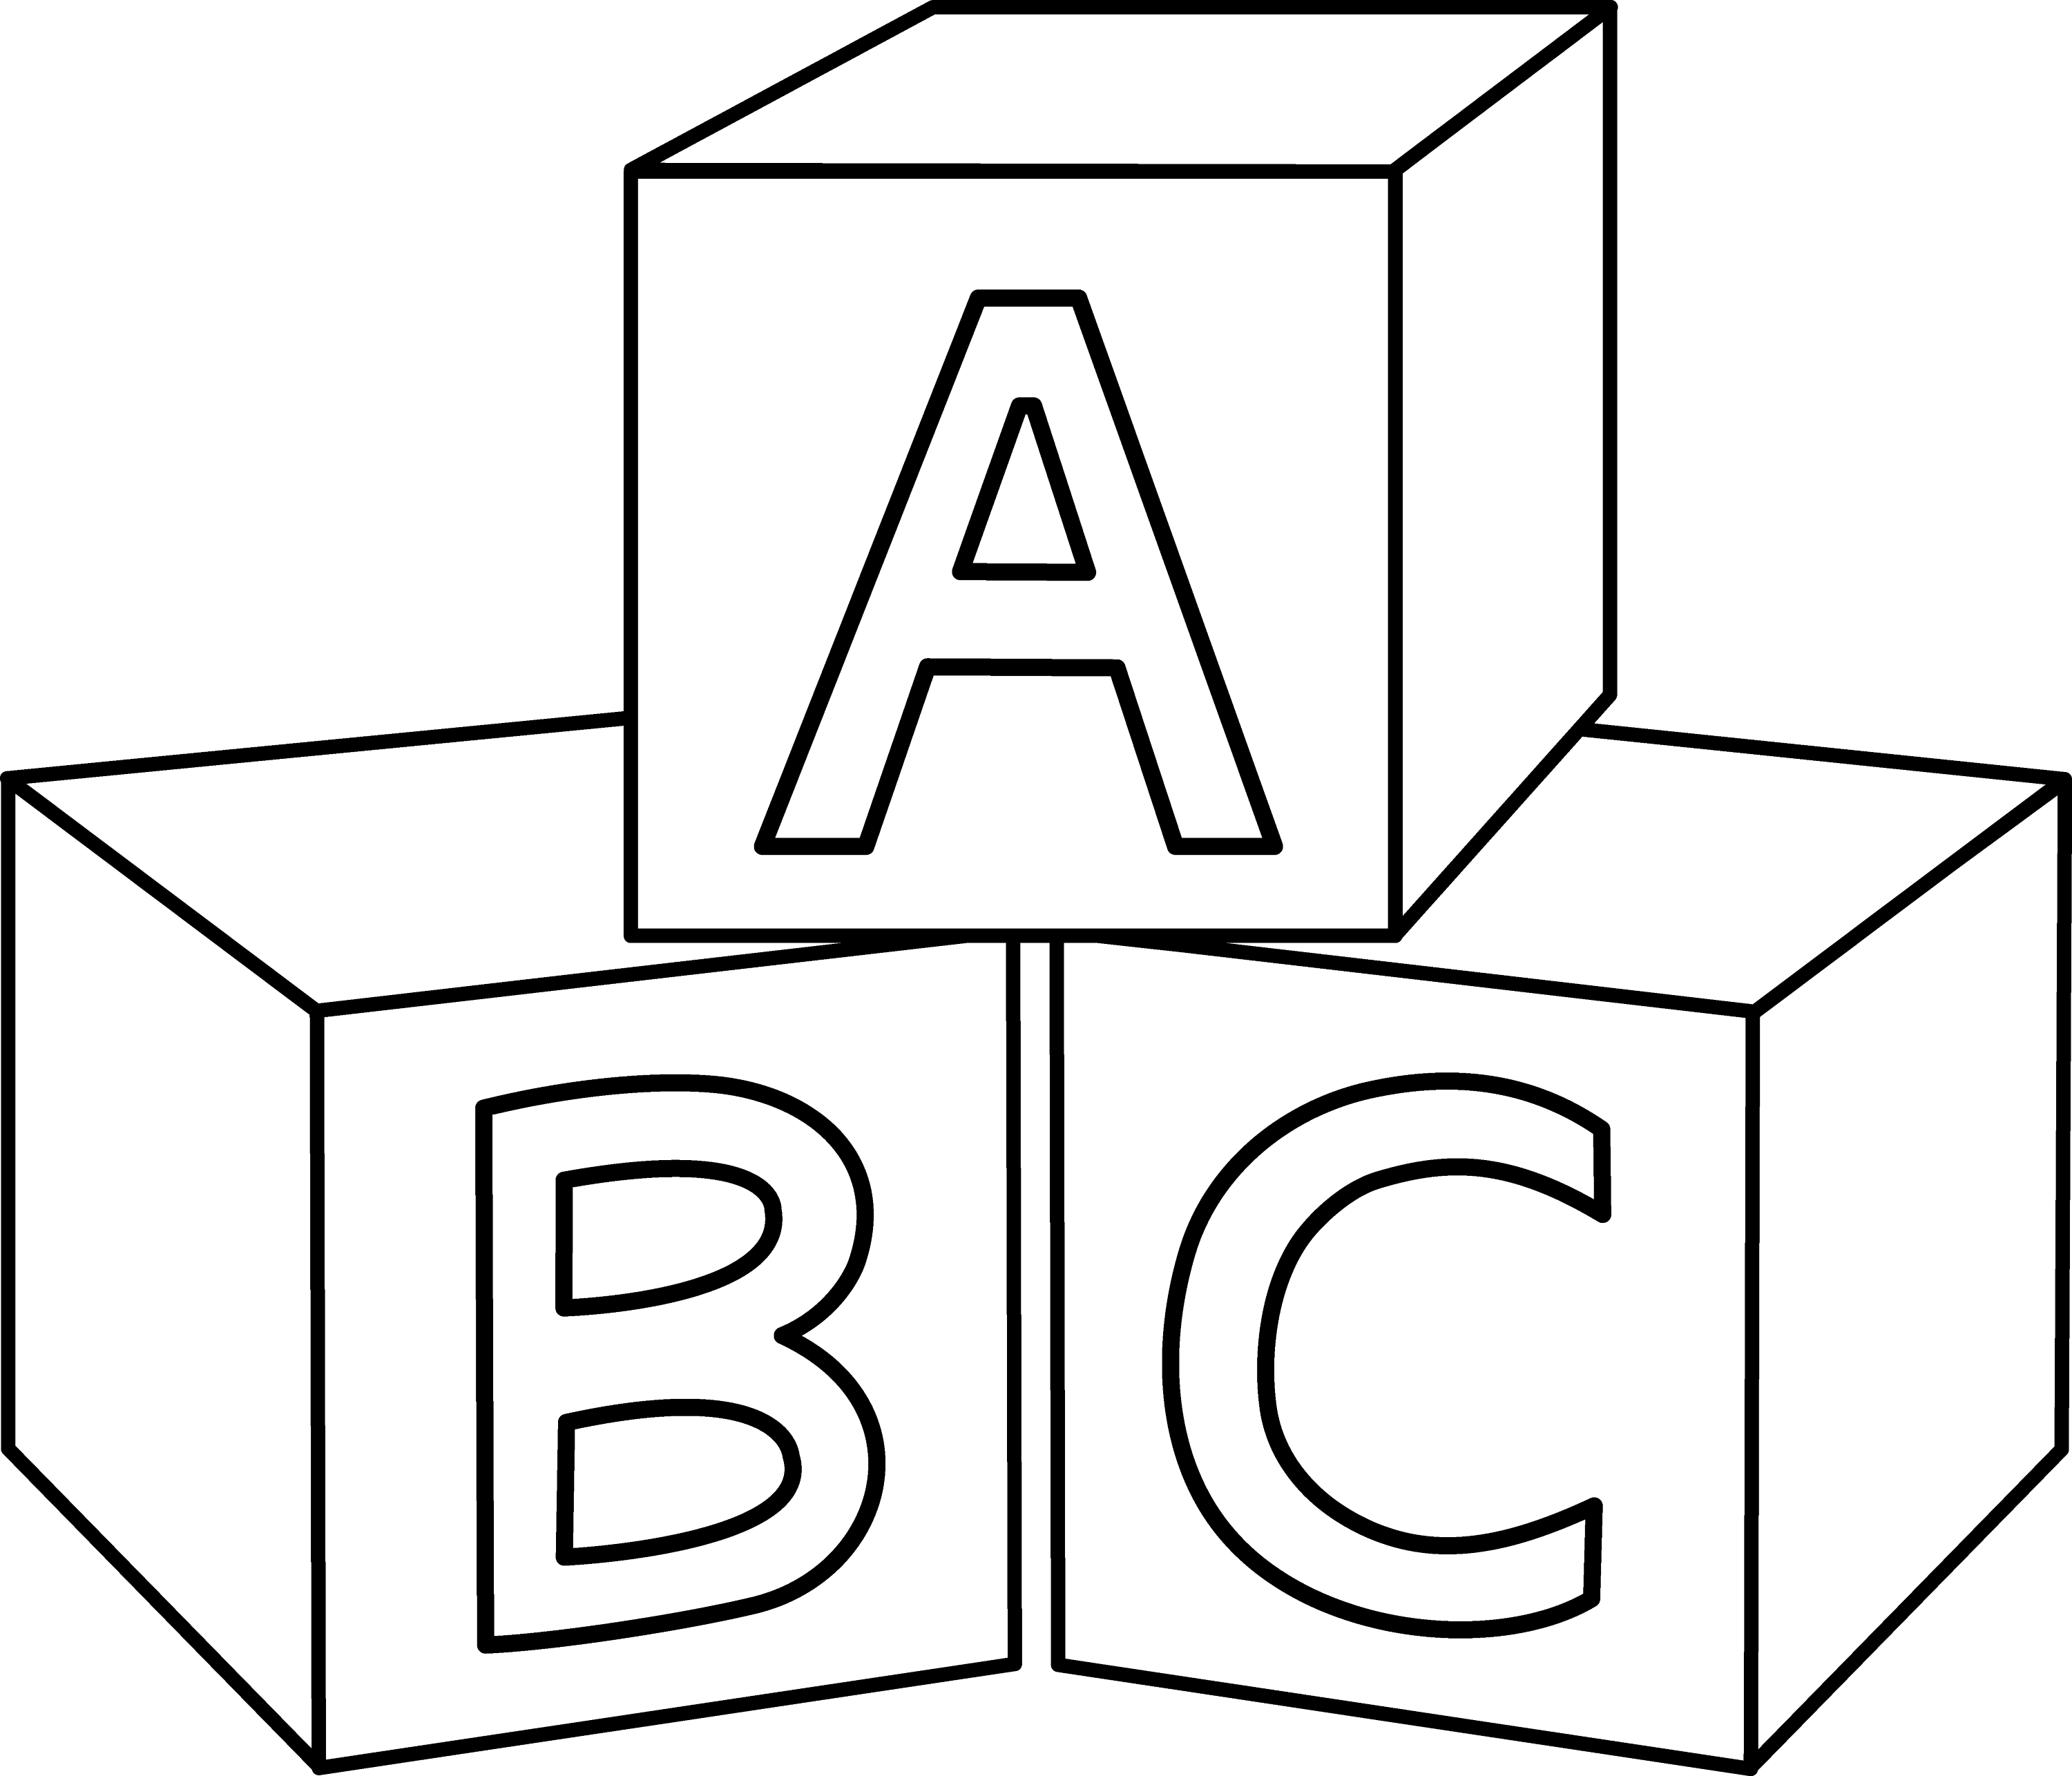 abc blocks coloring page free clip art